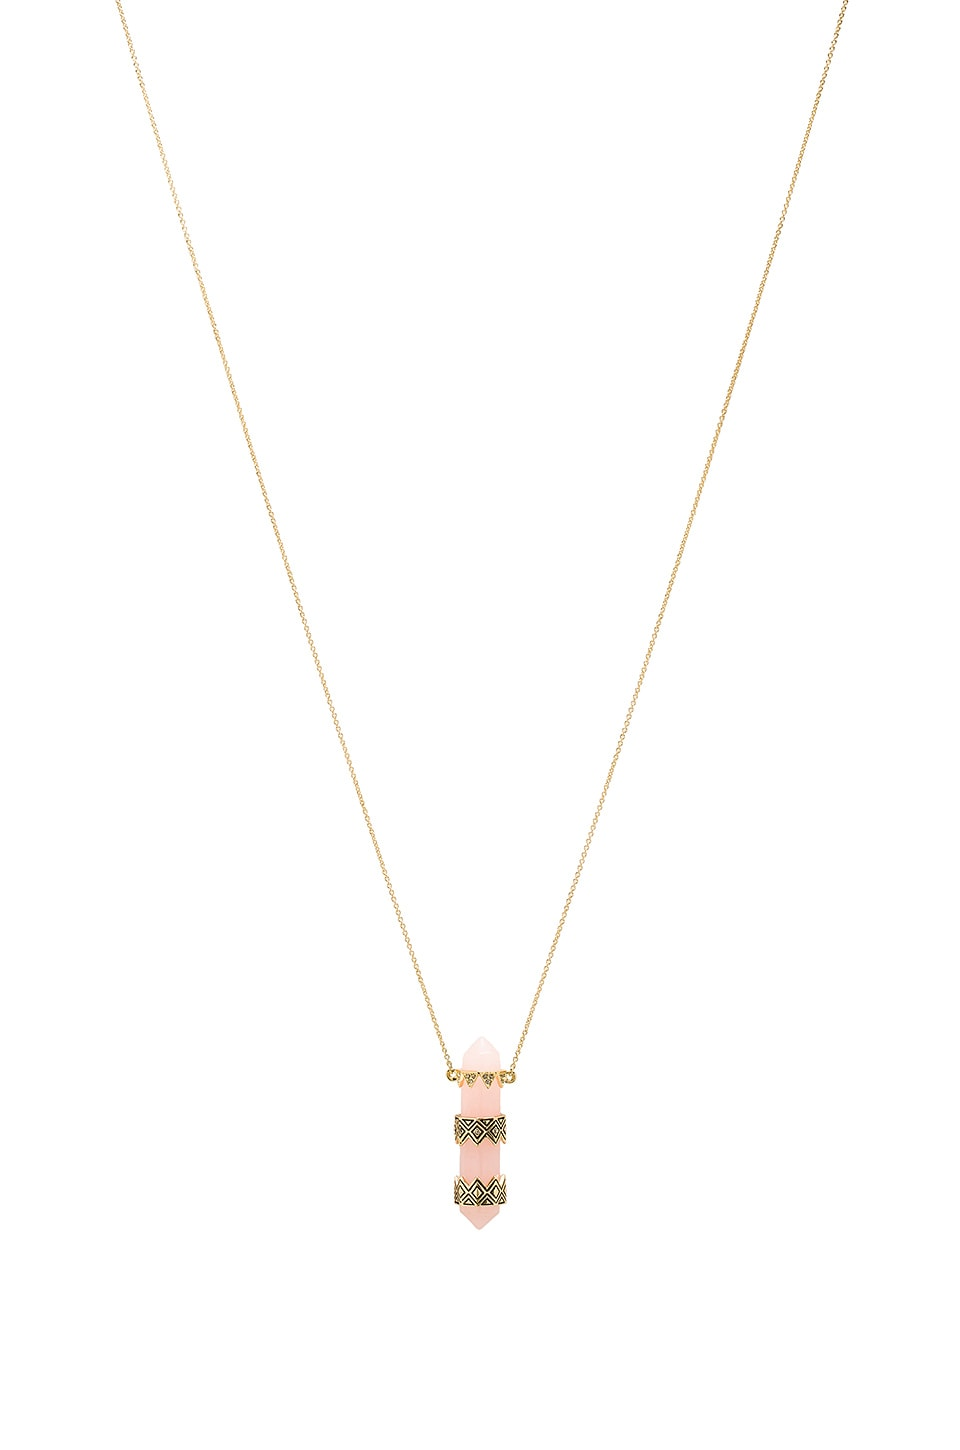 House of Harlow 1960 House of Harlow Prana Pendant Necklace in Gold & Rose Quartz